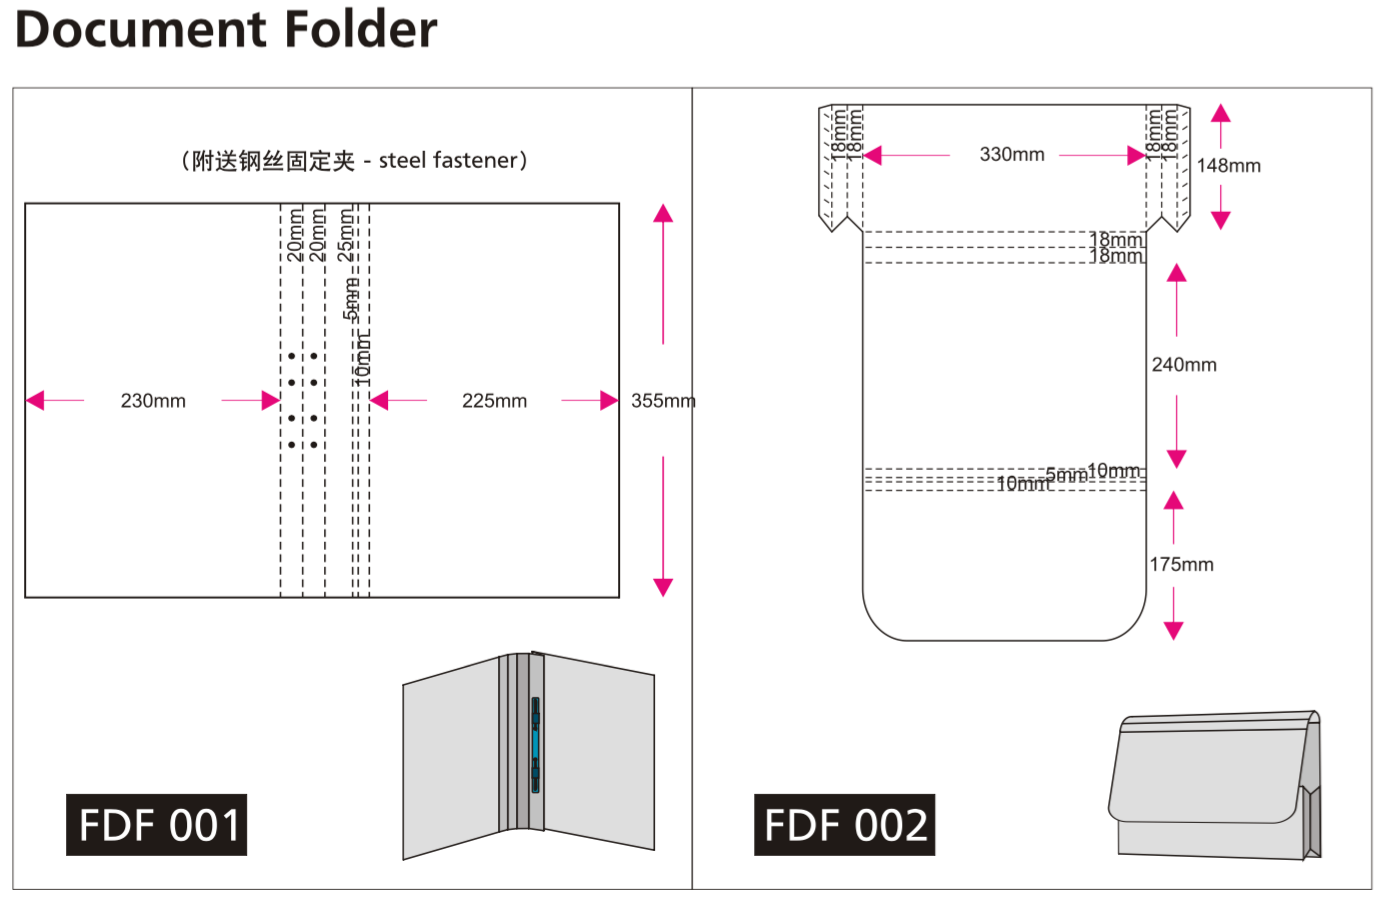 document folder Document Folder document folder printing